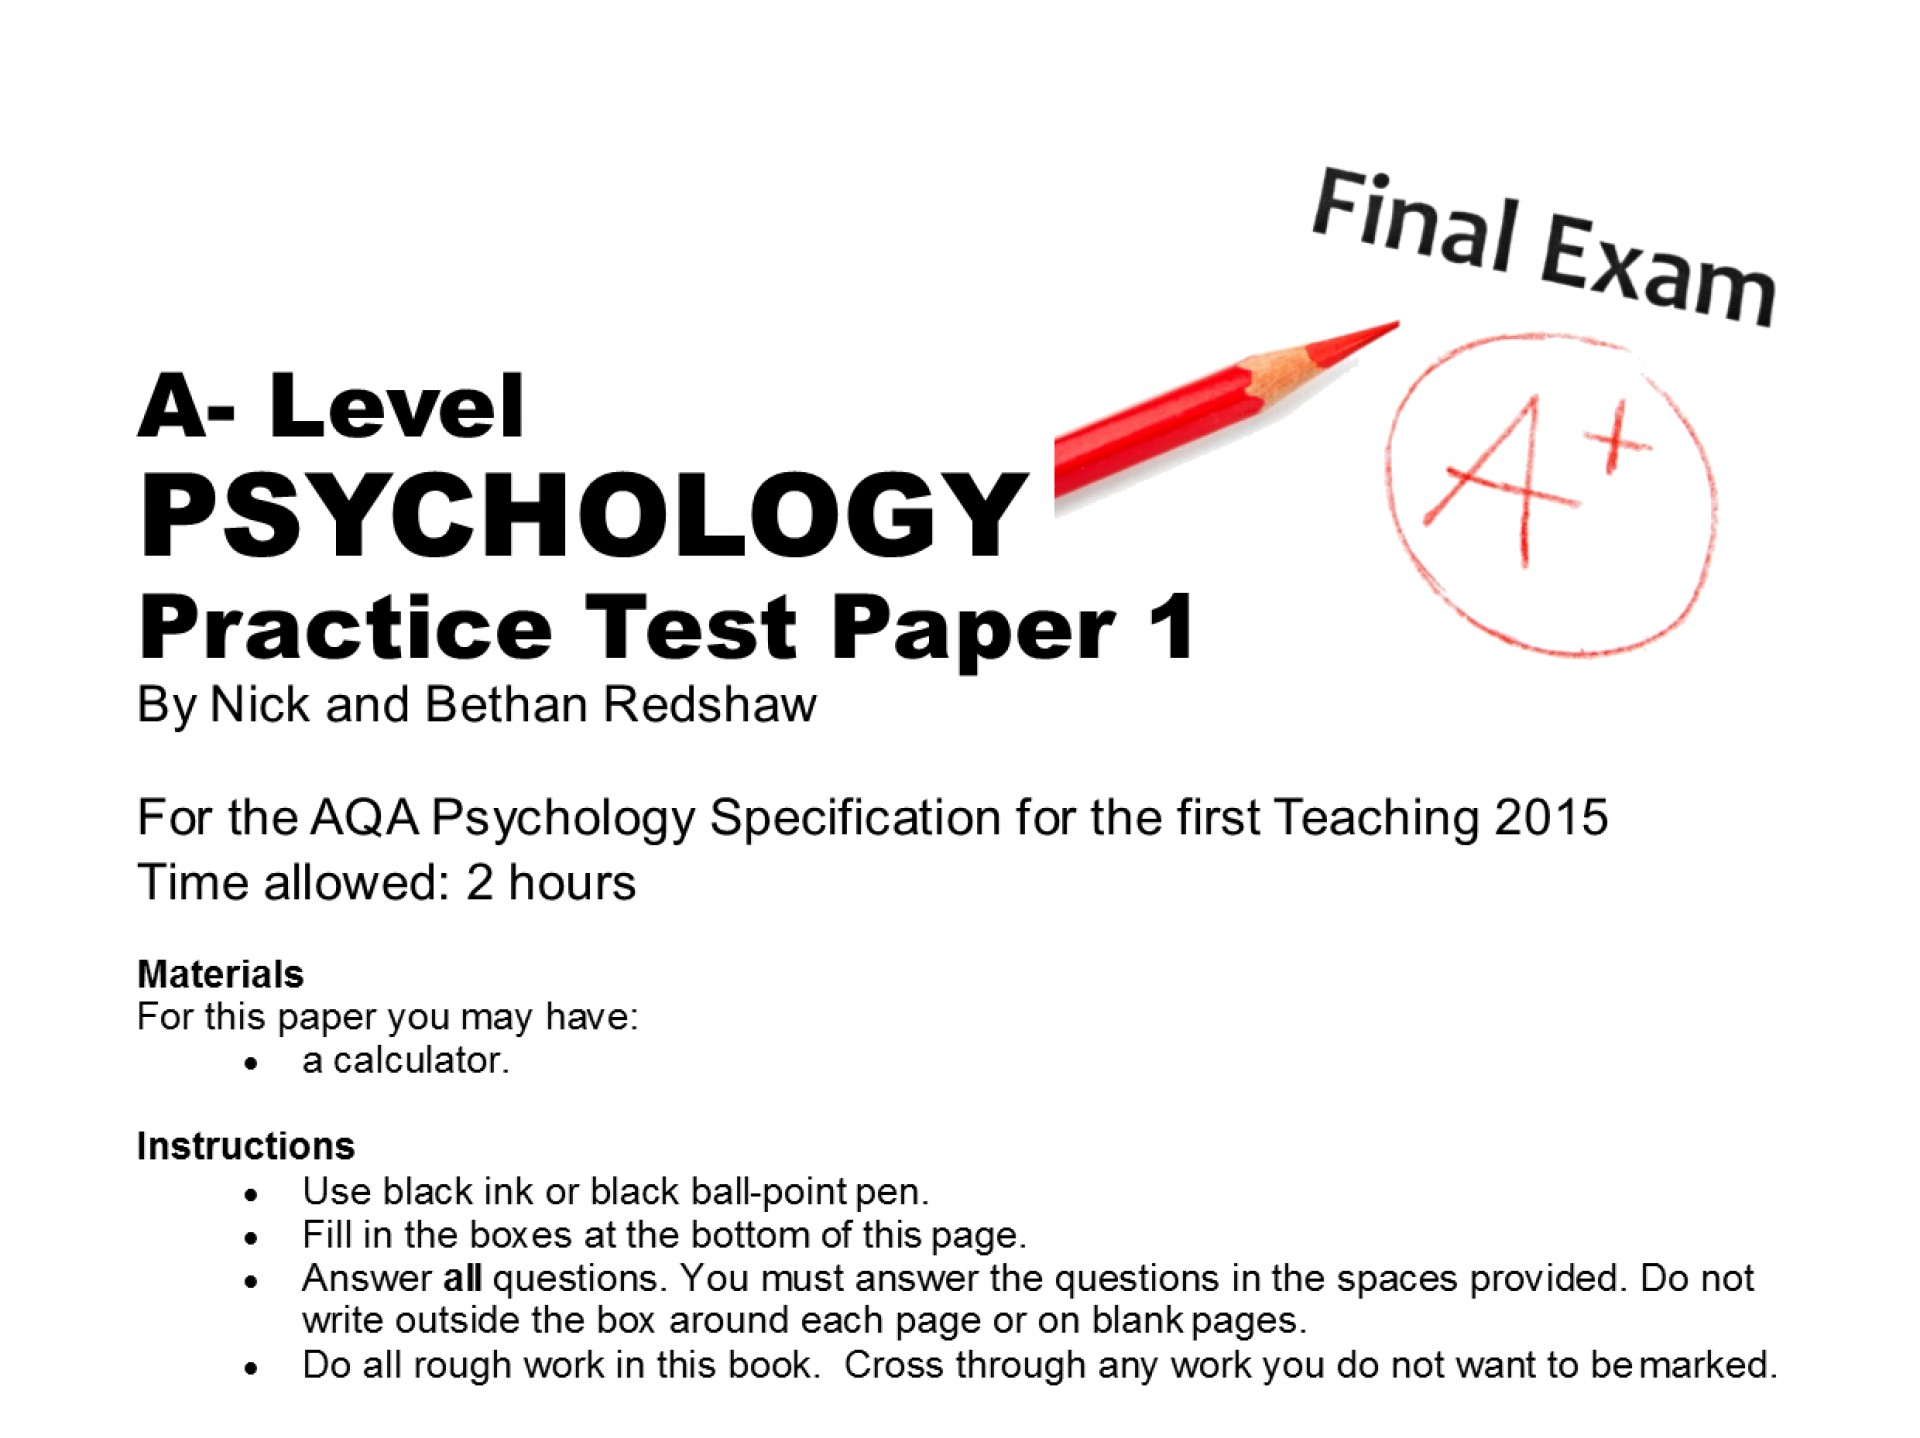 001 Aqa Psychology Research Methods Paper Questionpaper1frontcover Crop 1240x929 02c0 Excellent 1 1920